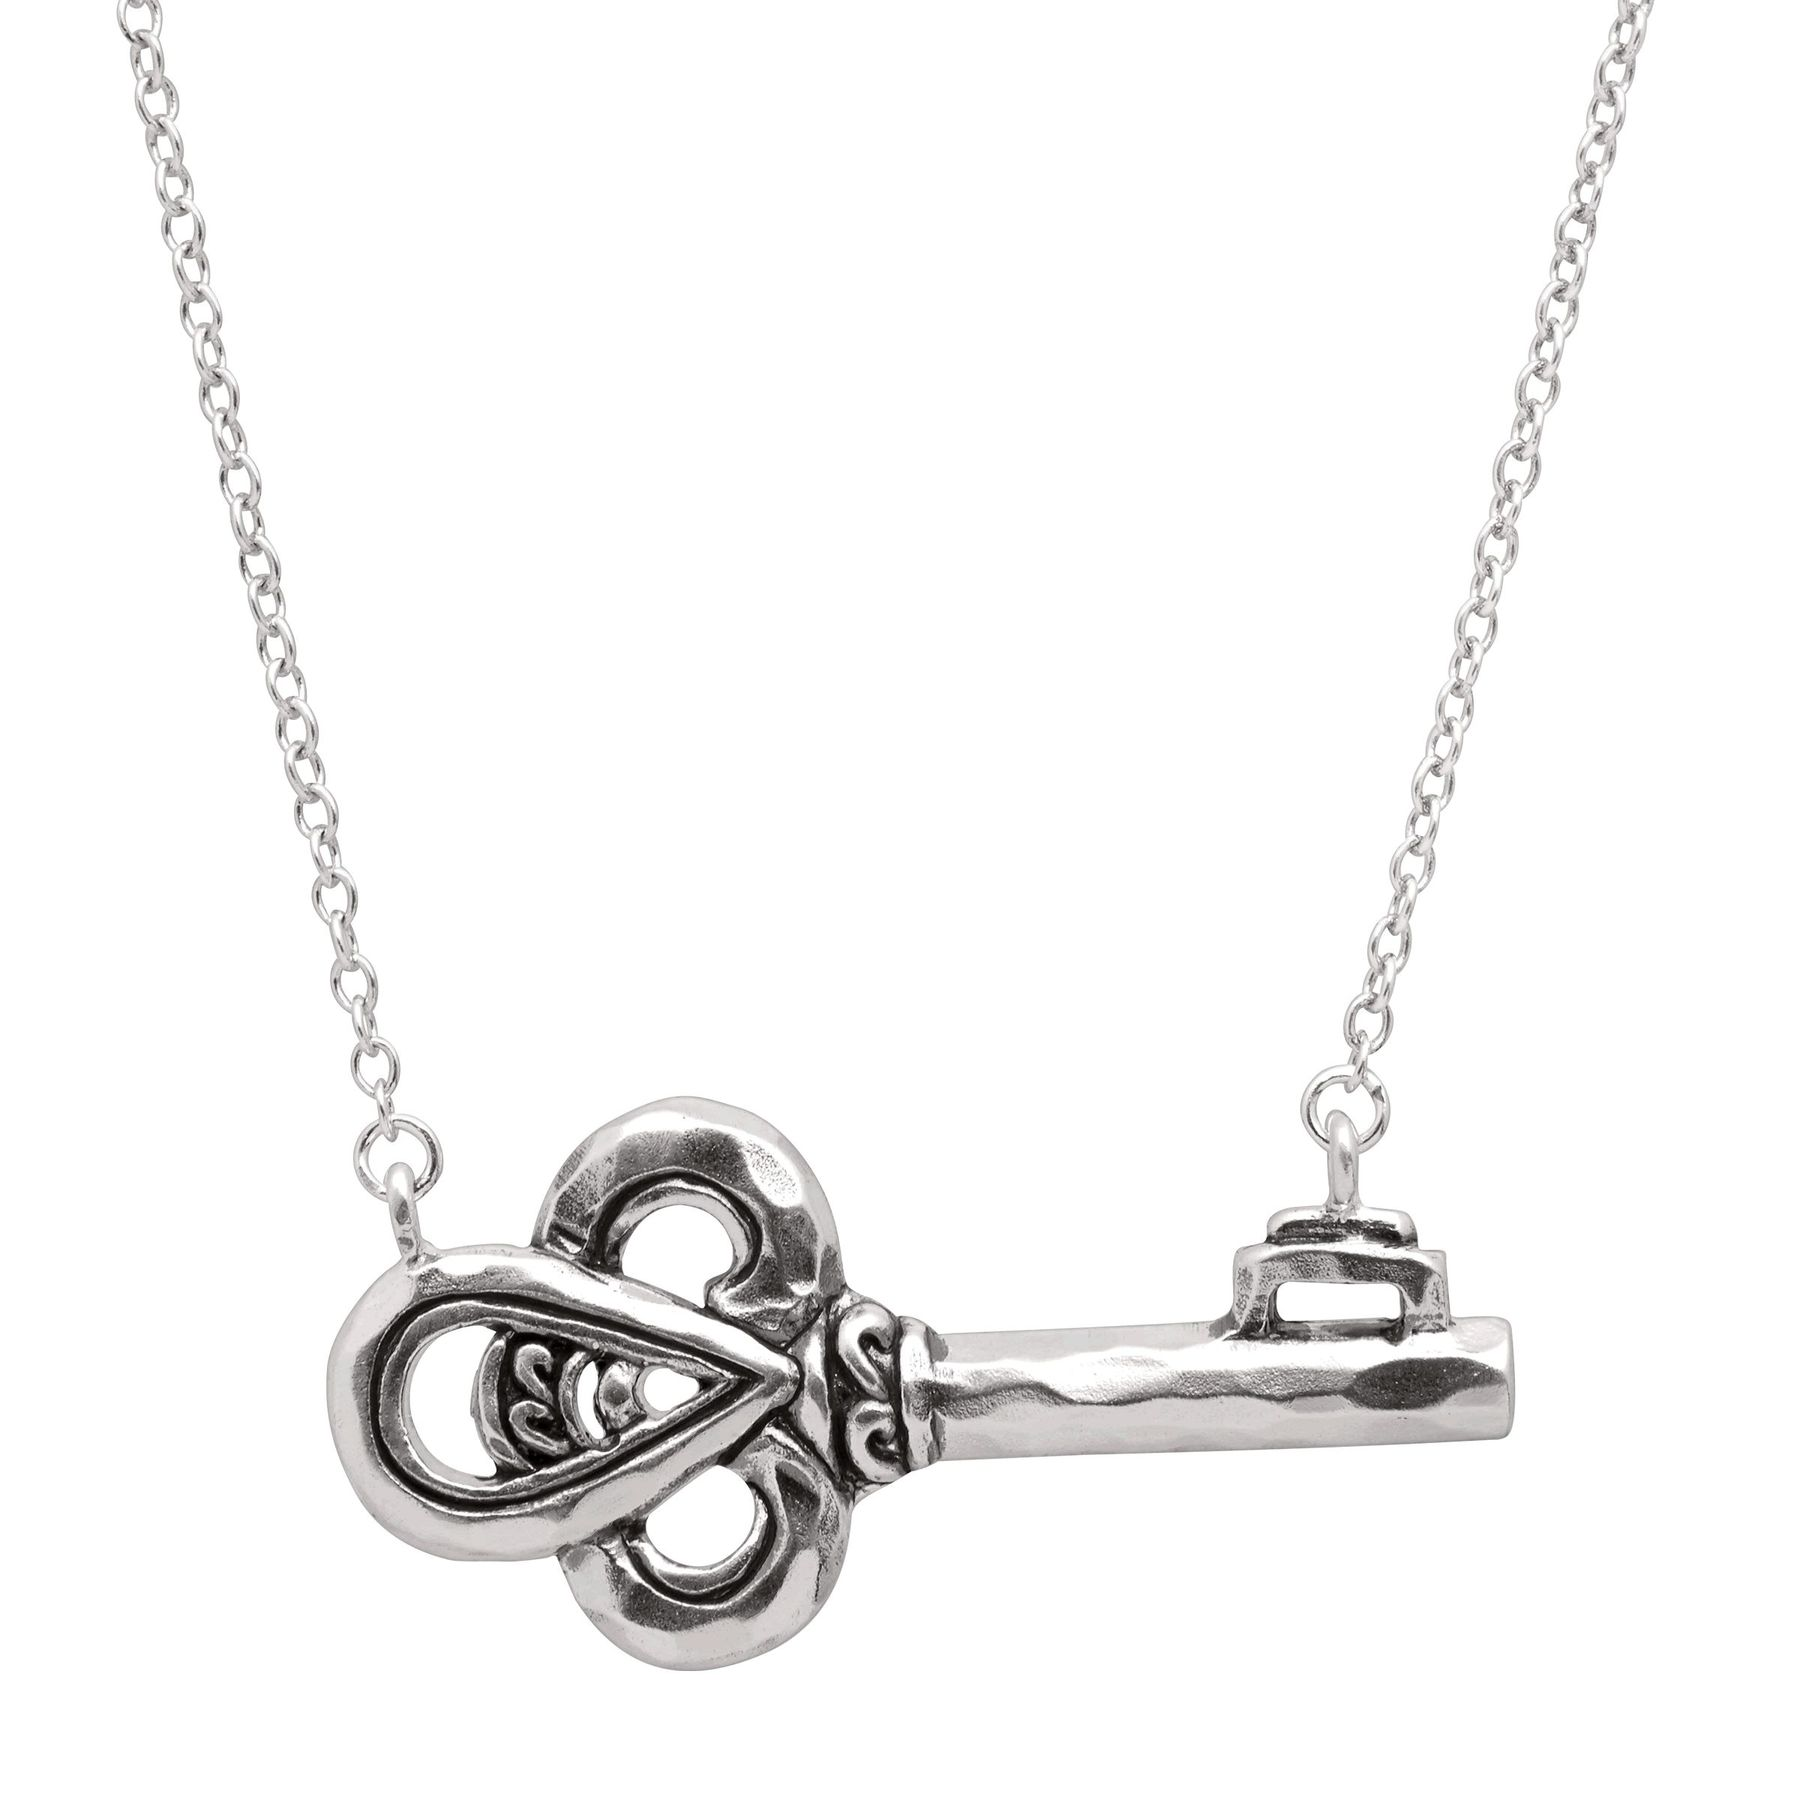 com key edge lucky product jewellery original by dainty daintyedgejewellery notonthehighstreet necklace